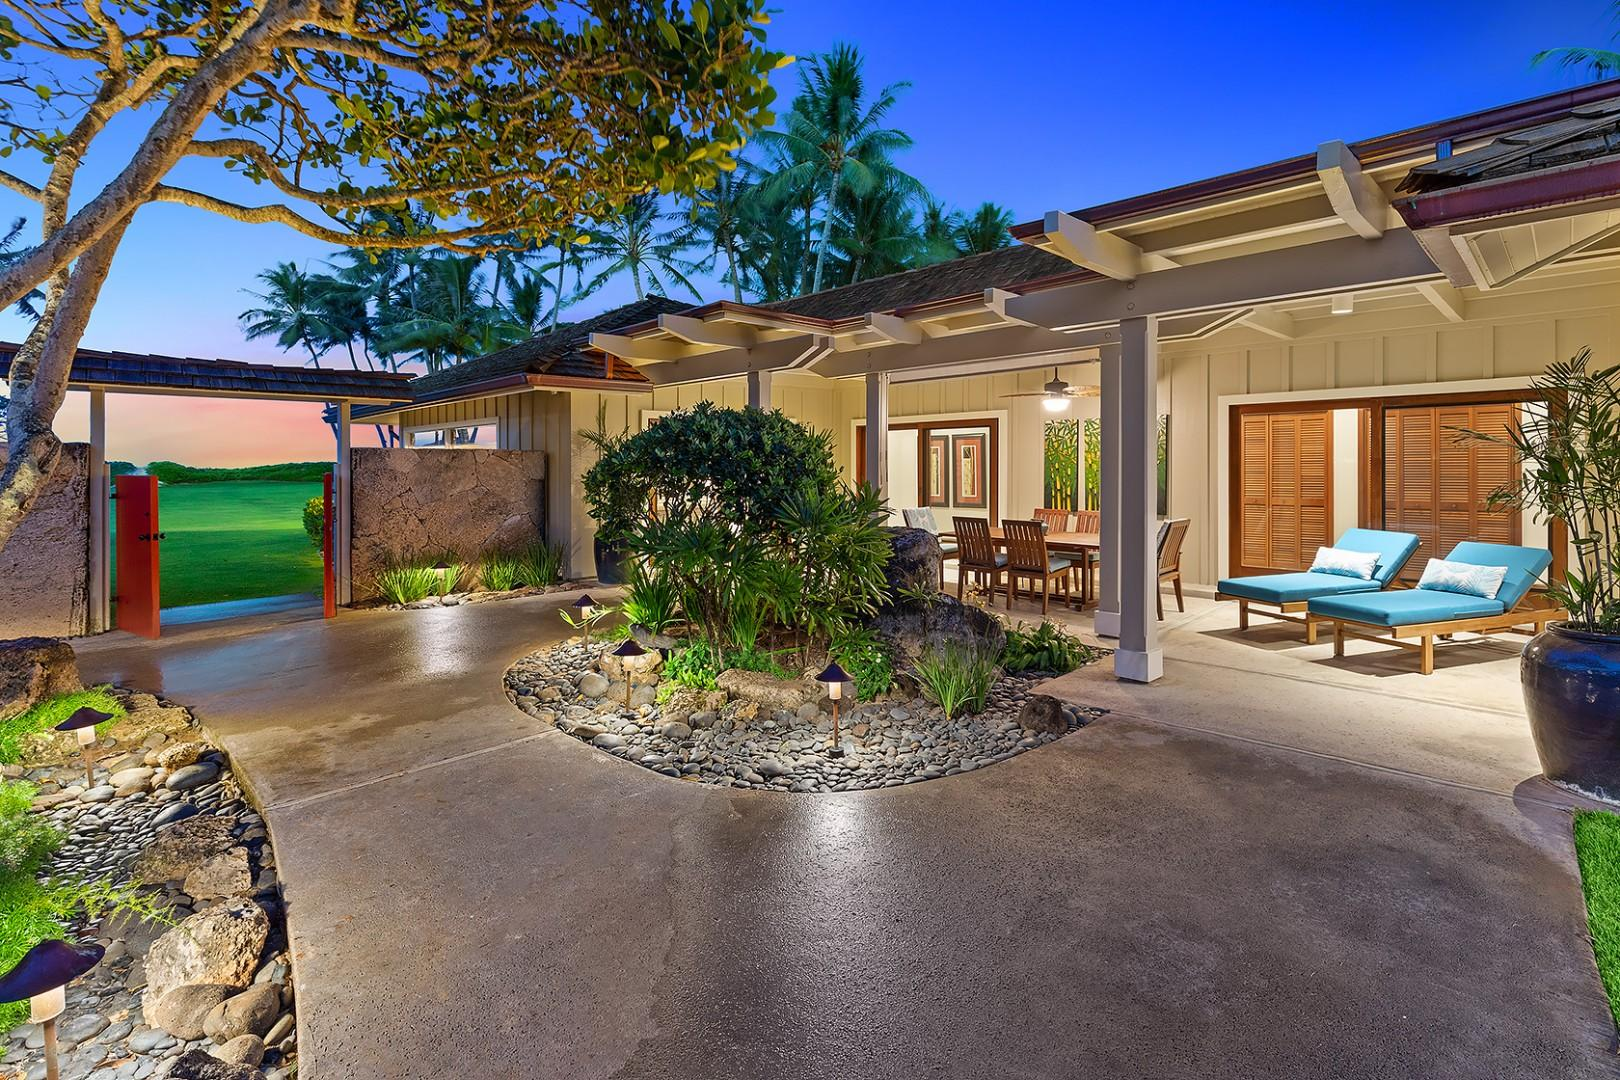 Beach House - Outdoor Lanai and Outdoor Dining